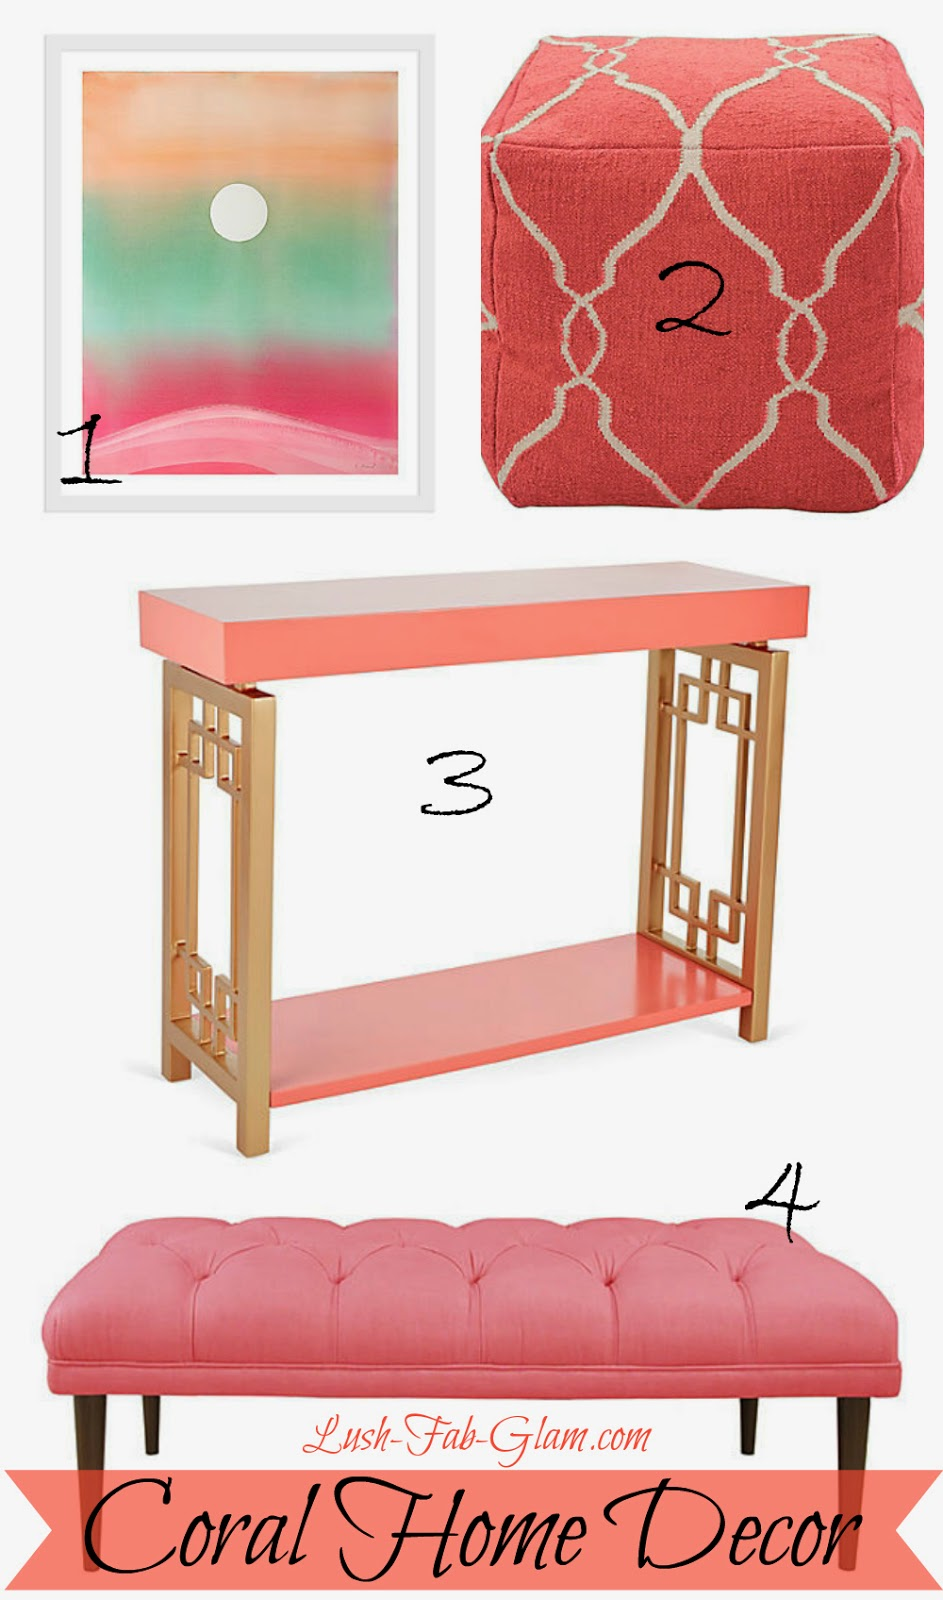 Get The Coral Look: 1. Emily Proud Moonrise Painting 2. Arbor Pouf In Coral  And Ivory 3. Melrose Console In Coral And Gold 4. Colette Tufted Bench In  Coral.